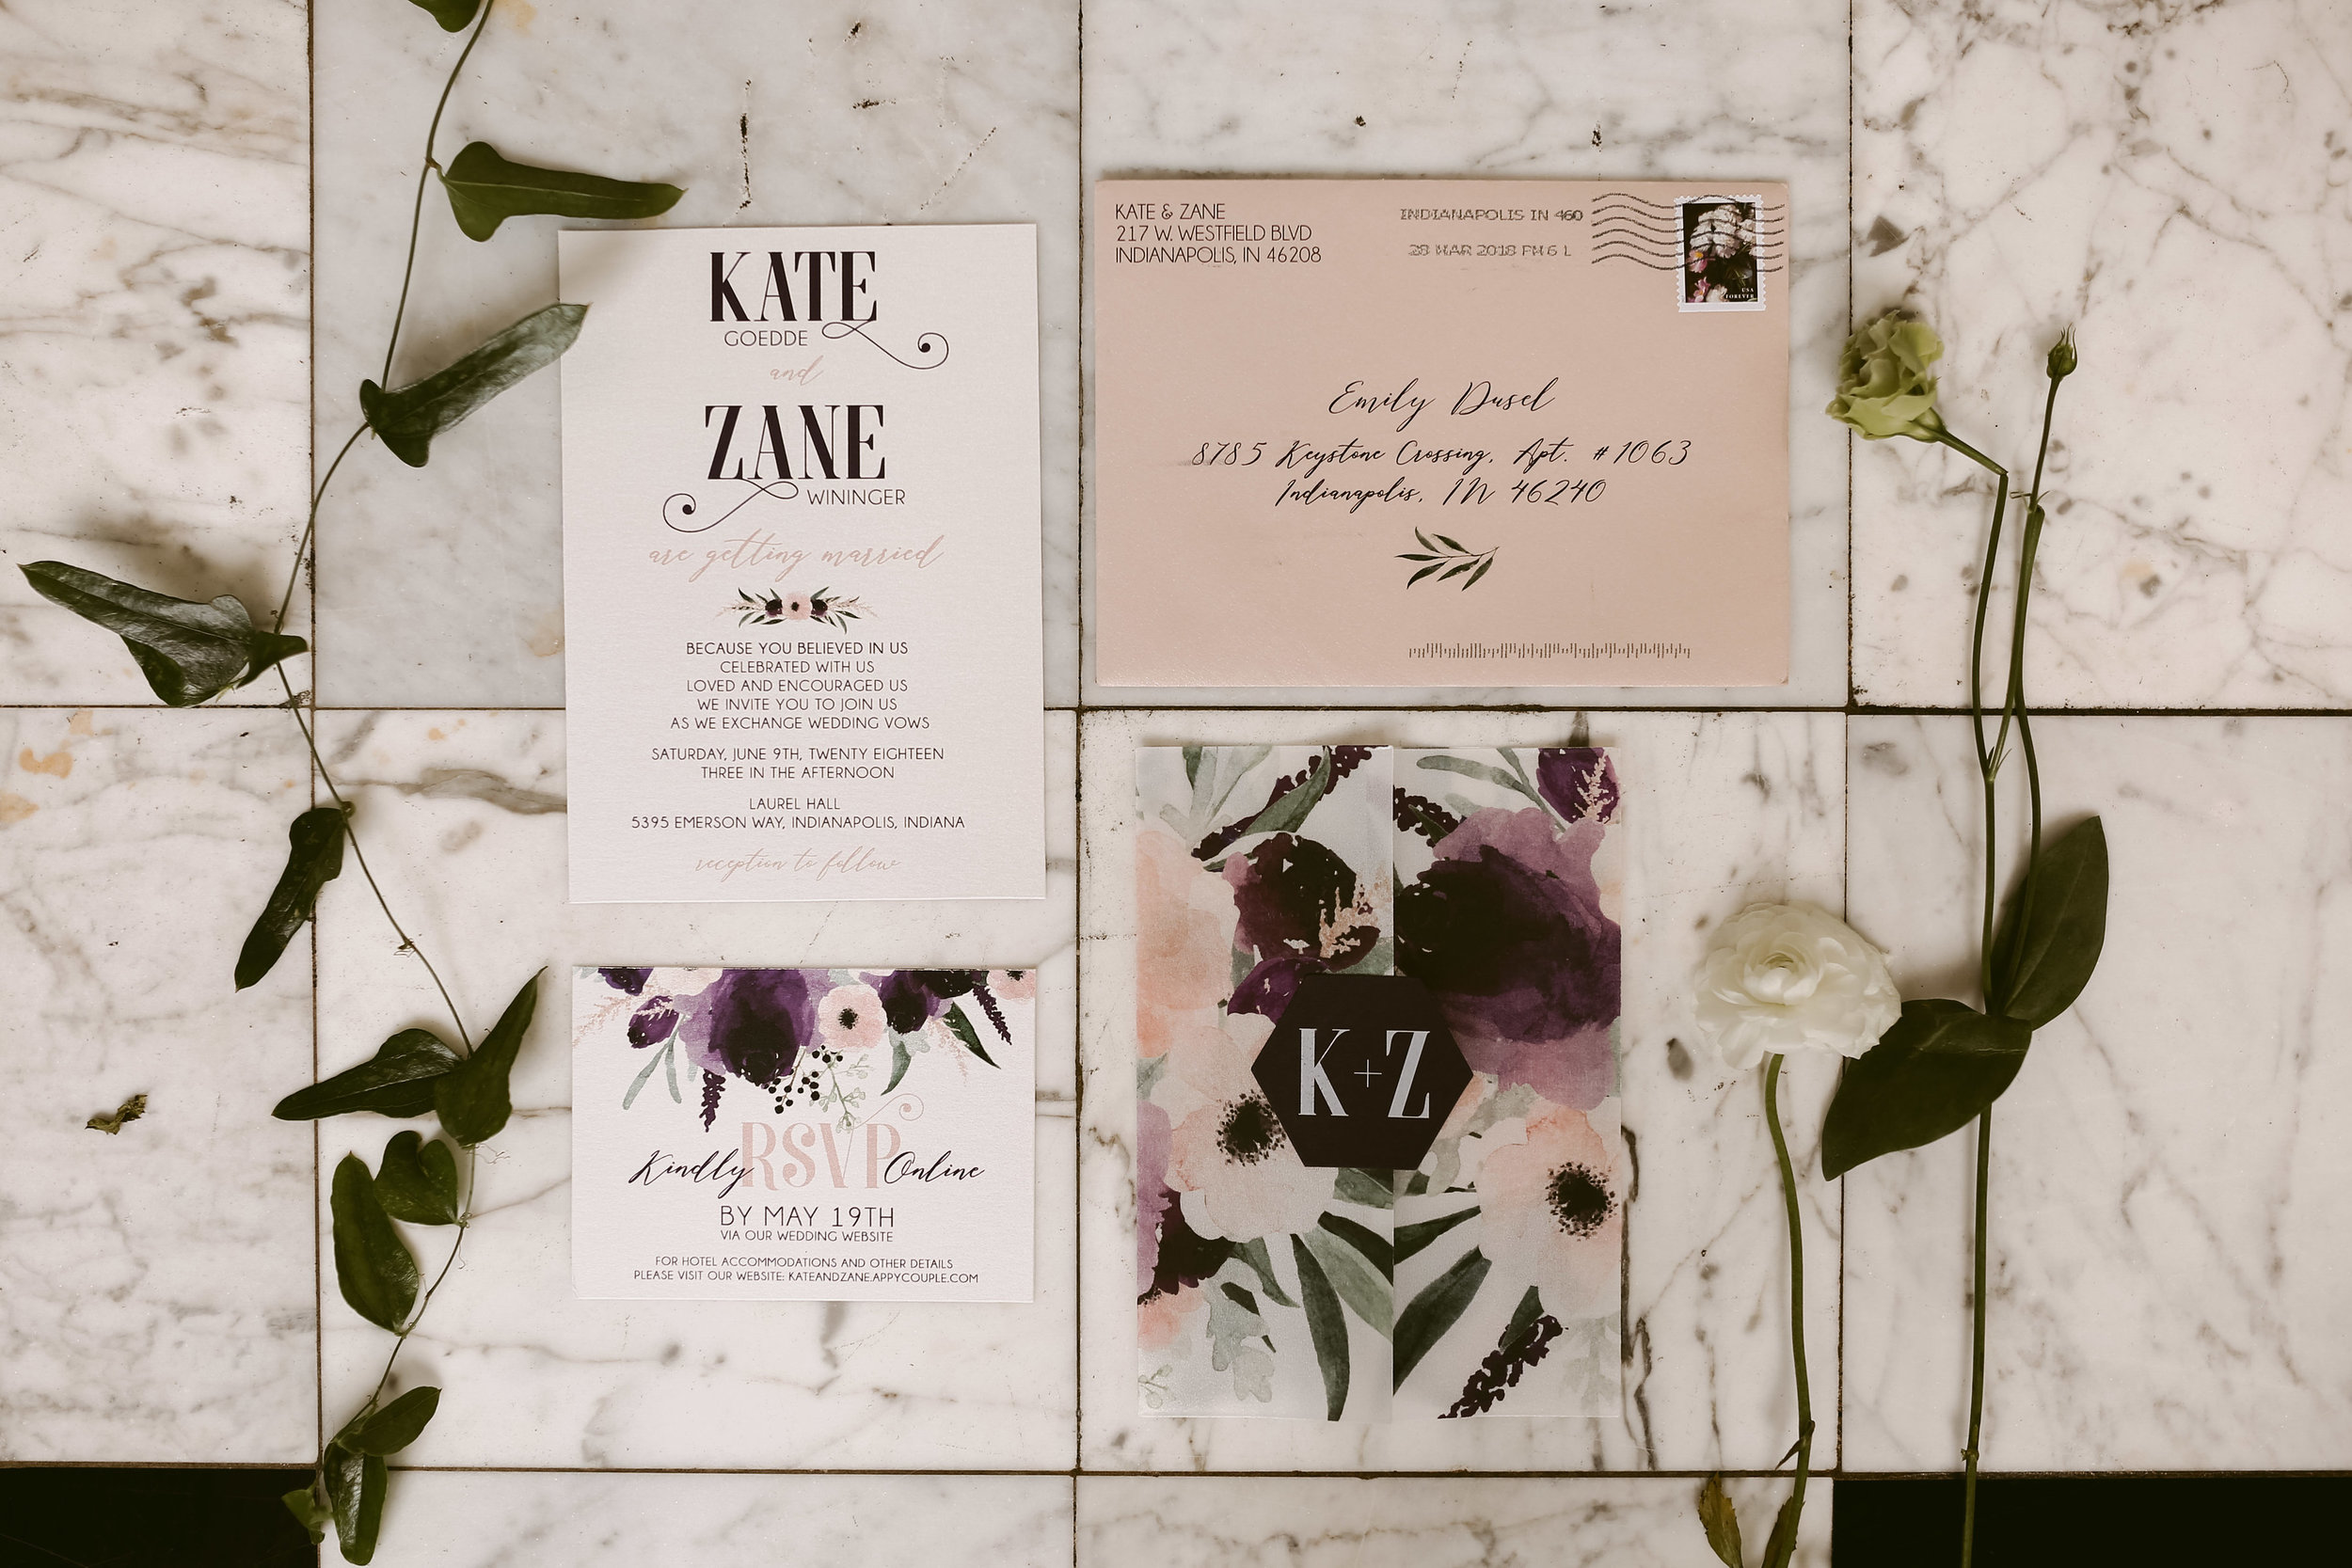 Vellum wraps are such a modern, and unique way to contain all the various pieces of your invitation suite. They can be plain, matte or shimmer vellum - or fully custom designed.